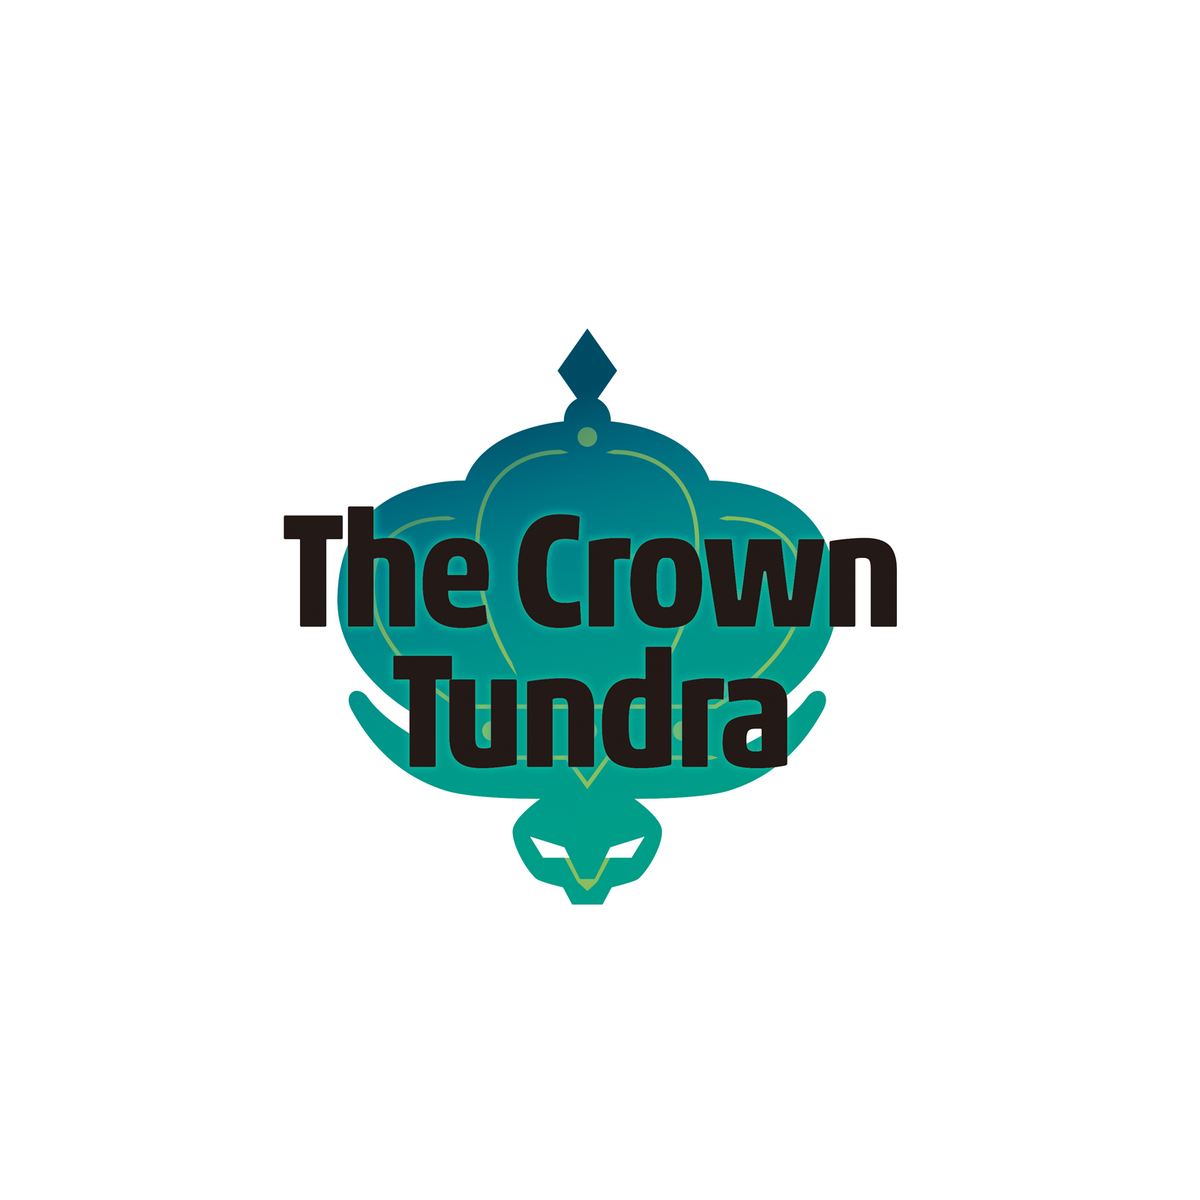 Logo for The Crown Tundra expansion for Pokémon Sword/Shield